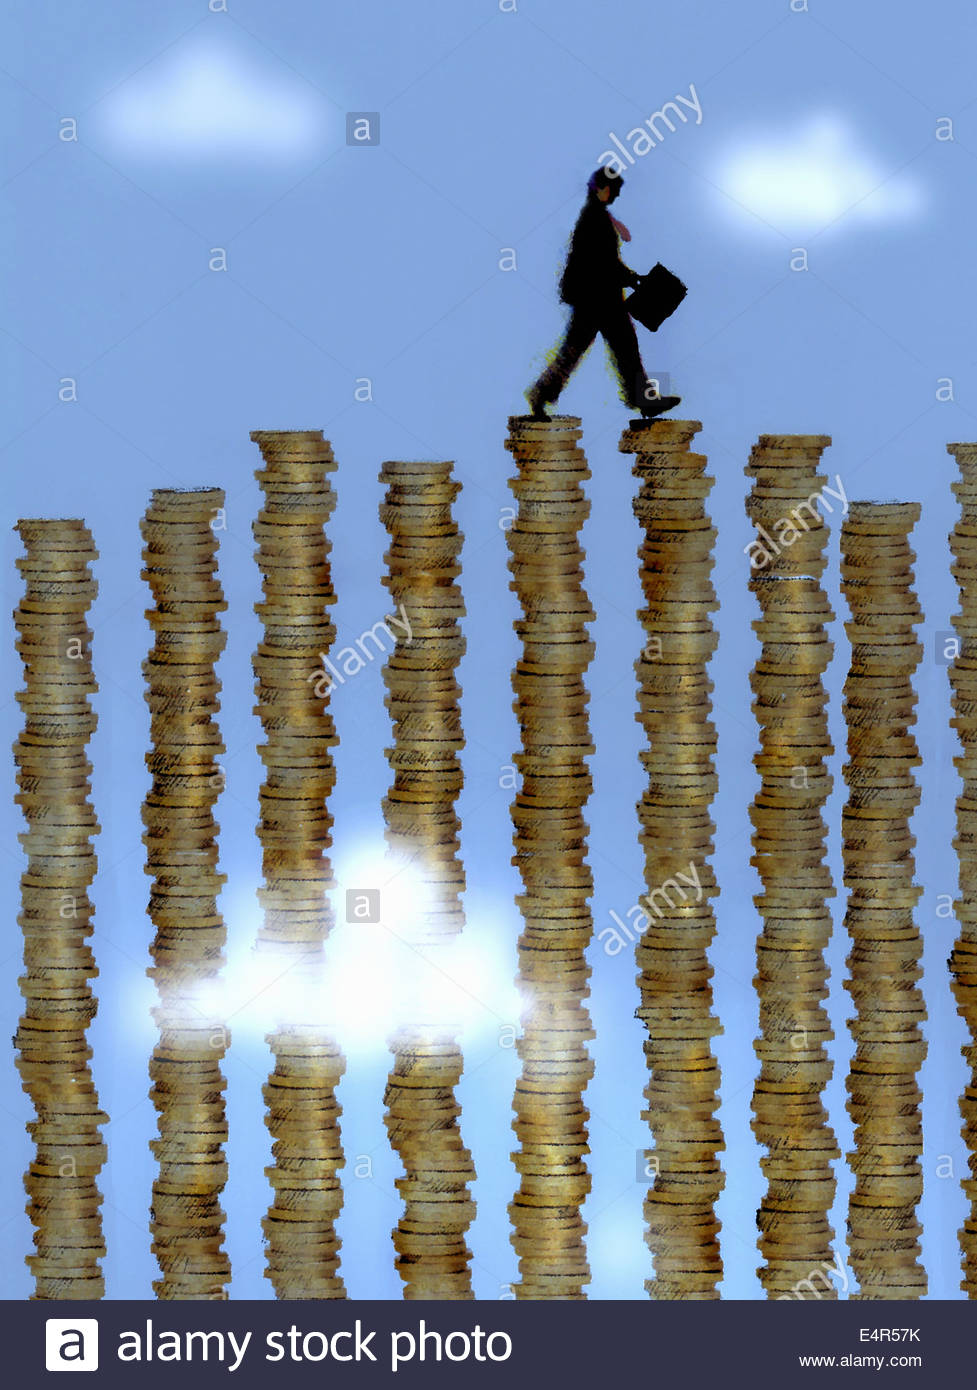 Businessman walking across stacks of coins forming money bar chart - Stock Image